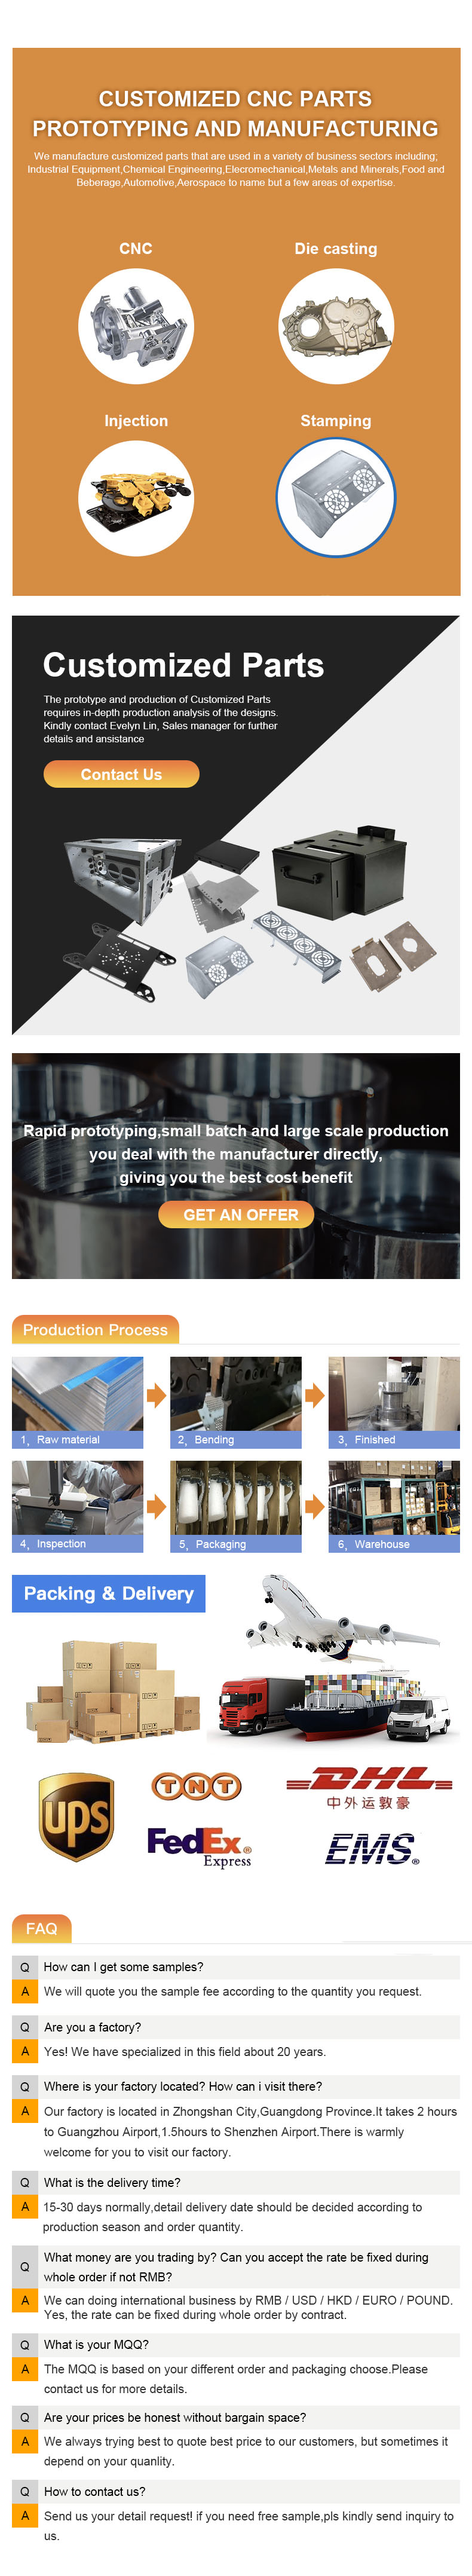 carbon steel stamping parts,CNC MACHINING PARTS,PRECISION CNC MACHINING PARTS,CNC ALUMINUM PARTS,Machined Products,CNC Machined Products,BoYang Hardware Products